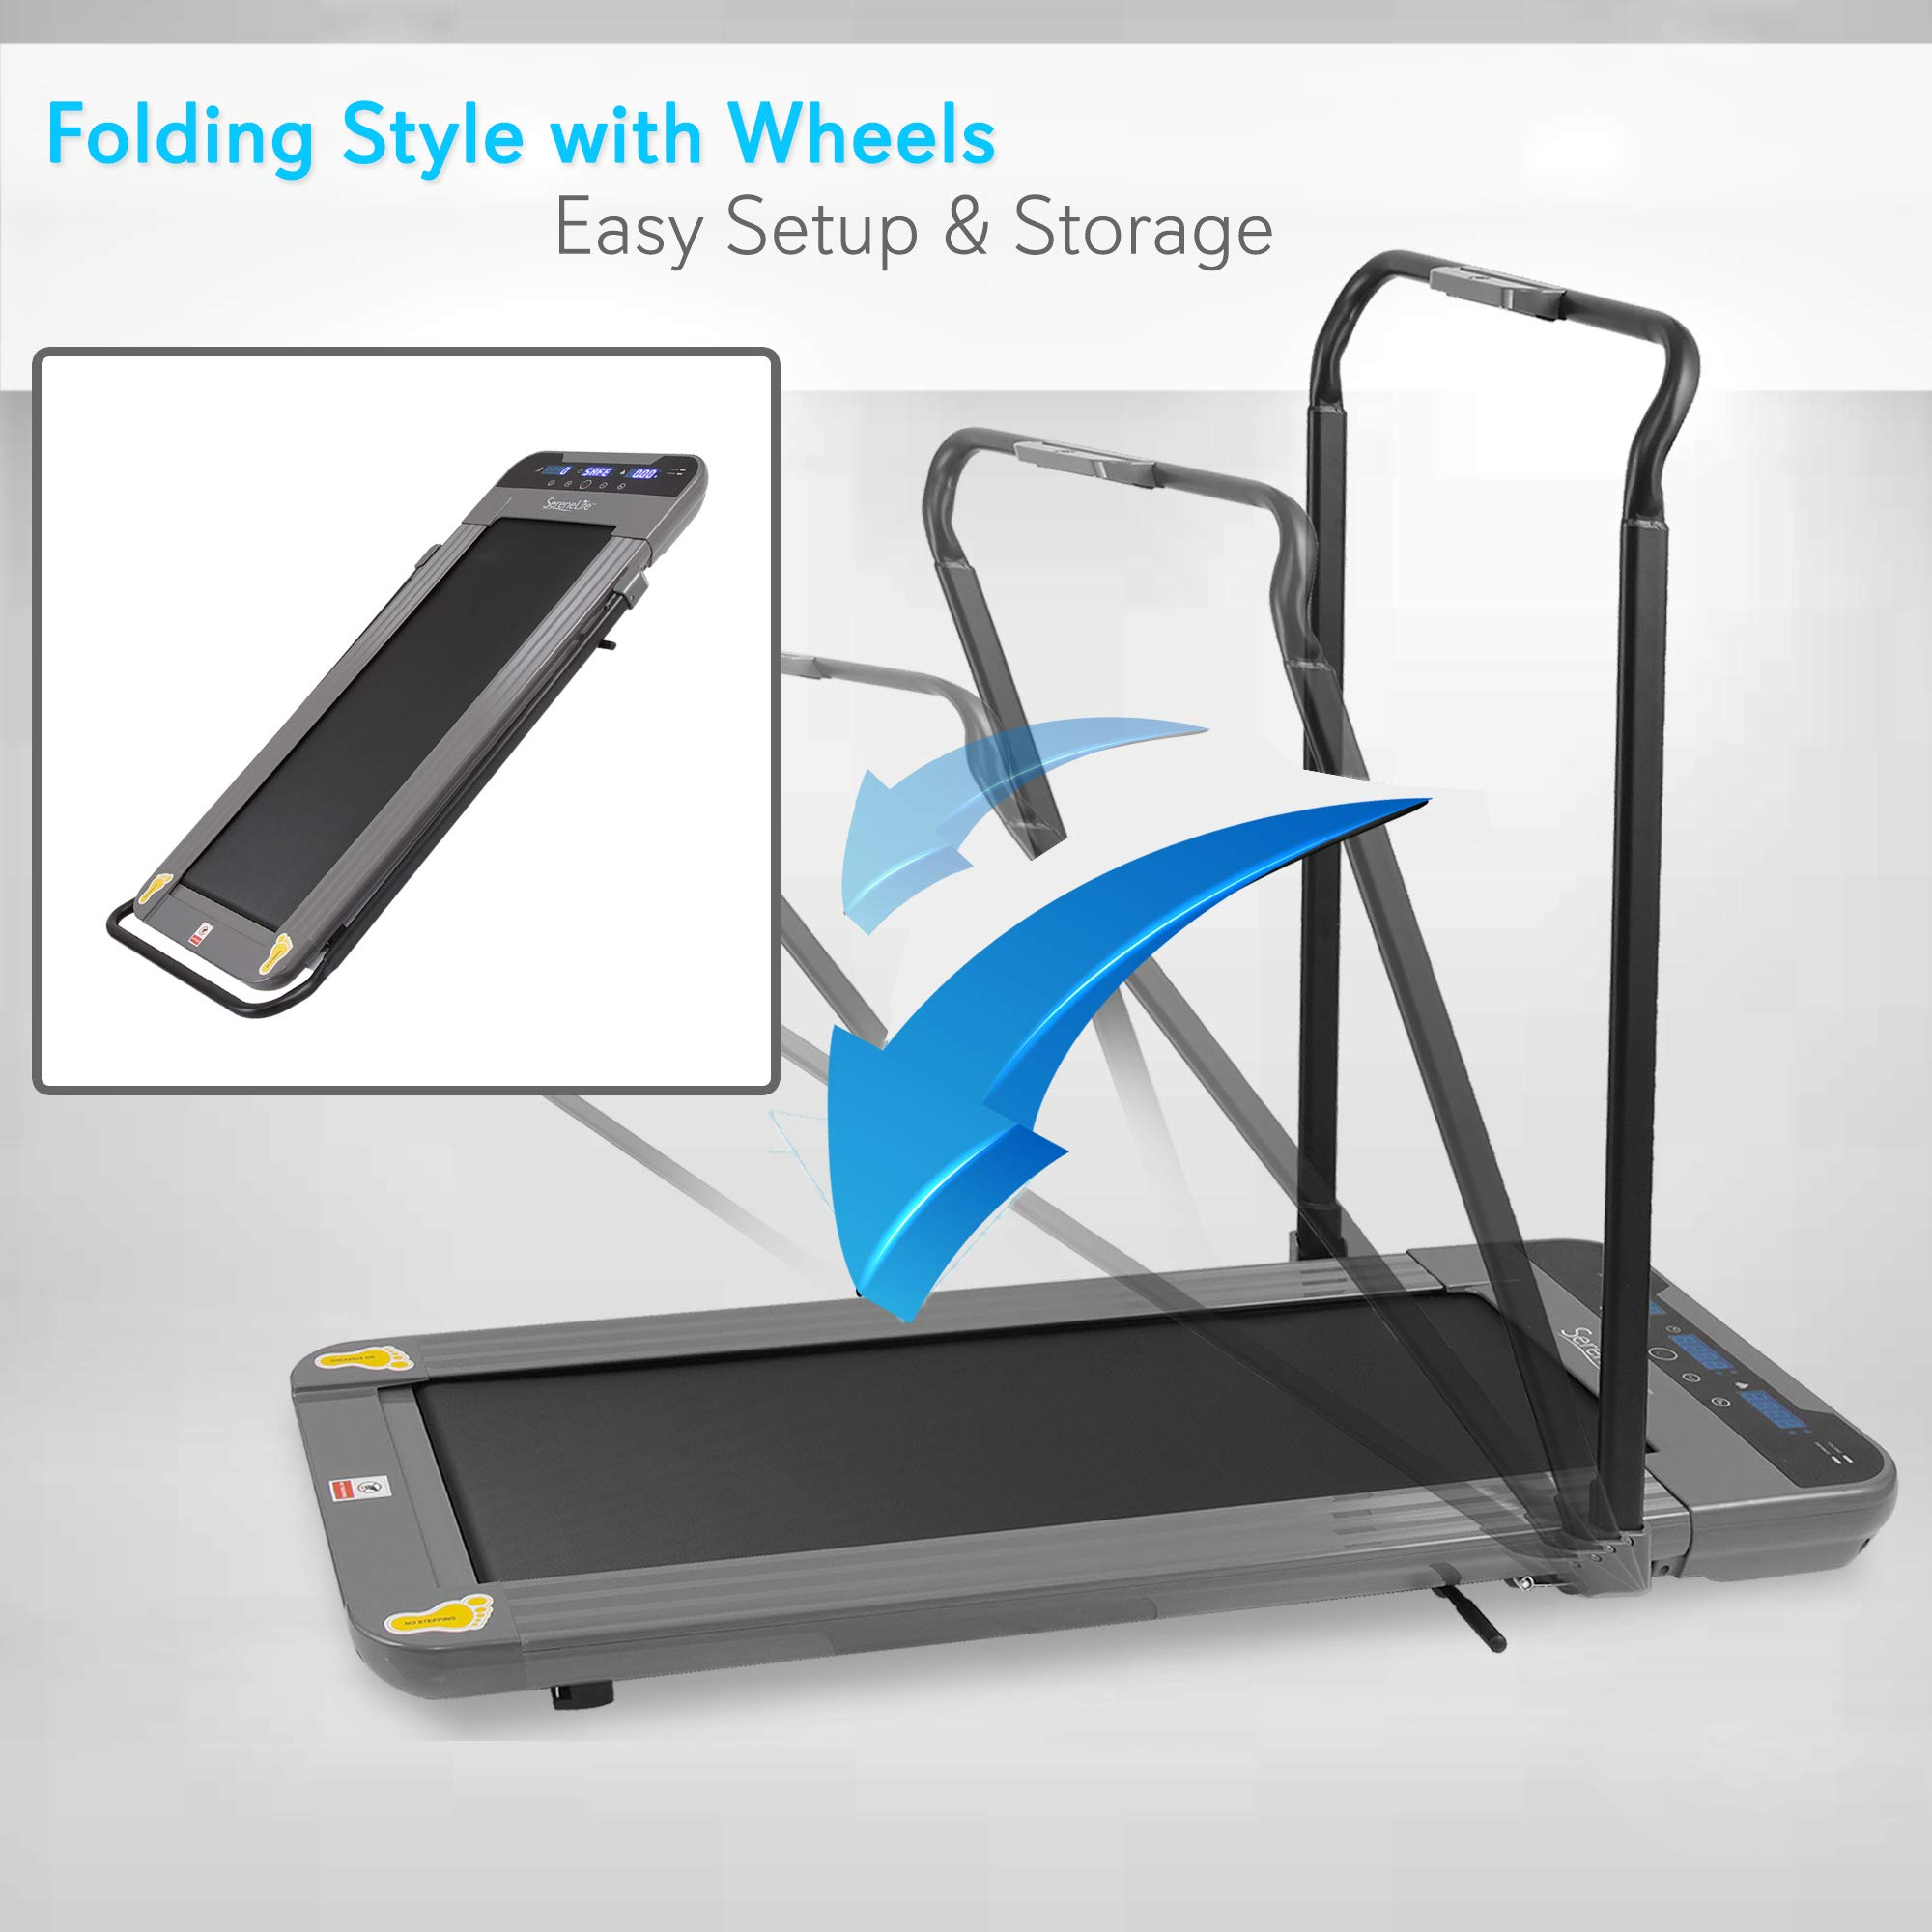 "SereneLife 350W Low Speed Fitness Treadmill - Smart Digital Slim Folding Electric Indoor Home Gym Foldable Fitness Exercise Running Machine - 40.0"" x 14.3"" Belt, Safety Key, Remote Control SLFTRD50 by SereneLife (Image #5)"